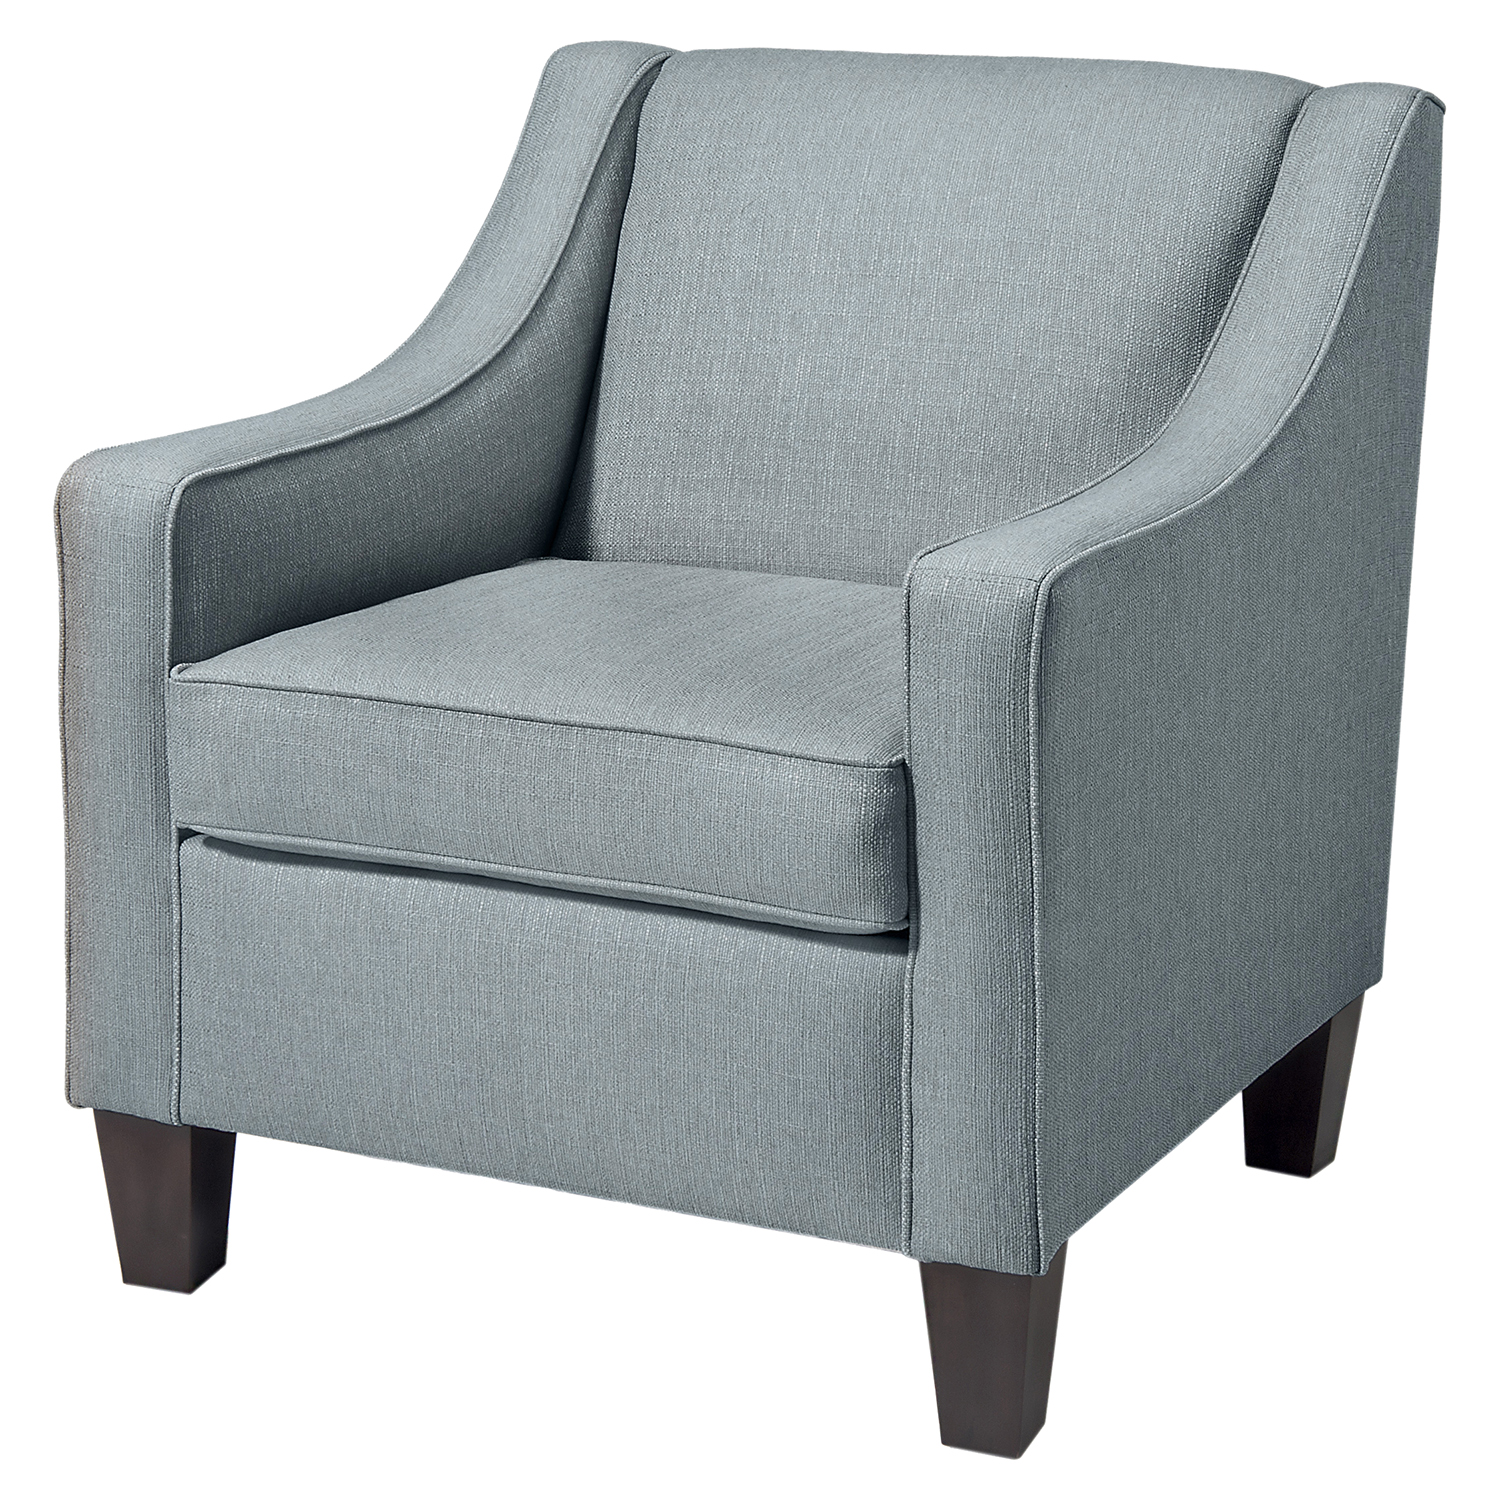 Ellery Club Chair - Spa